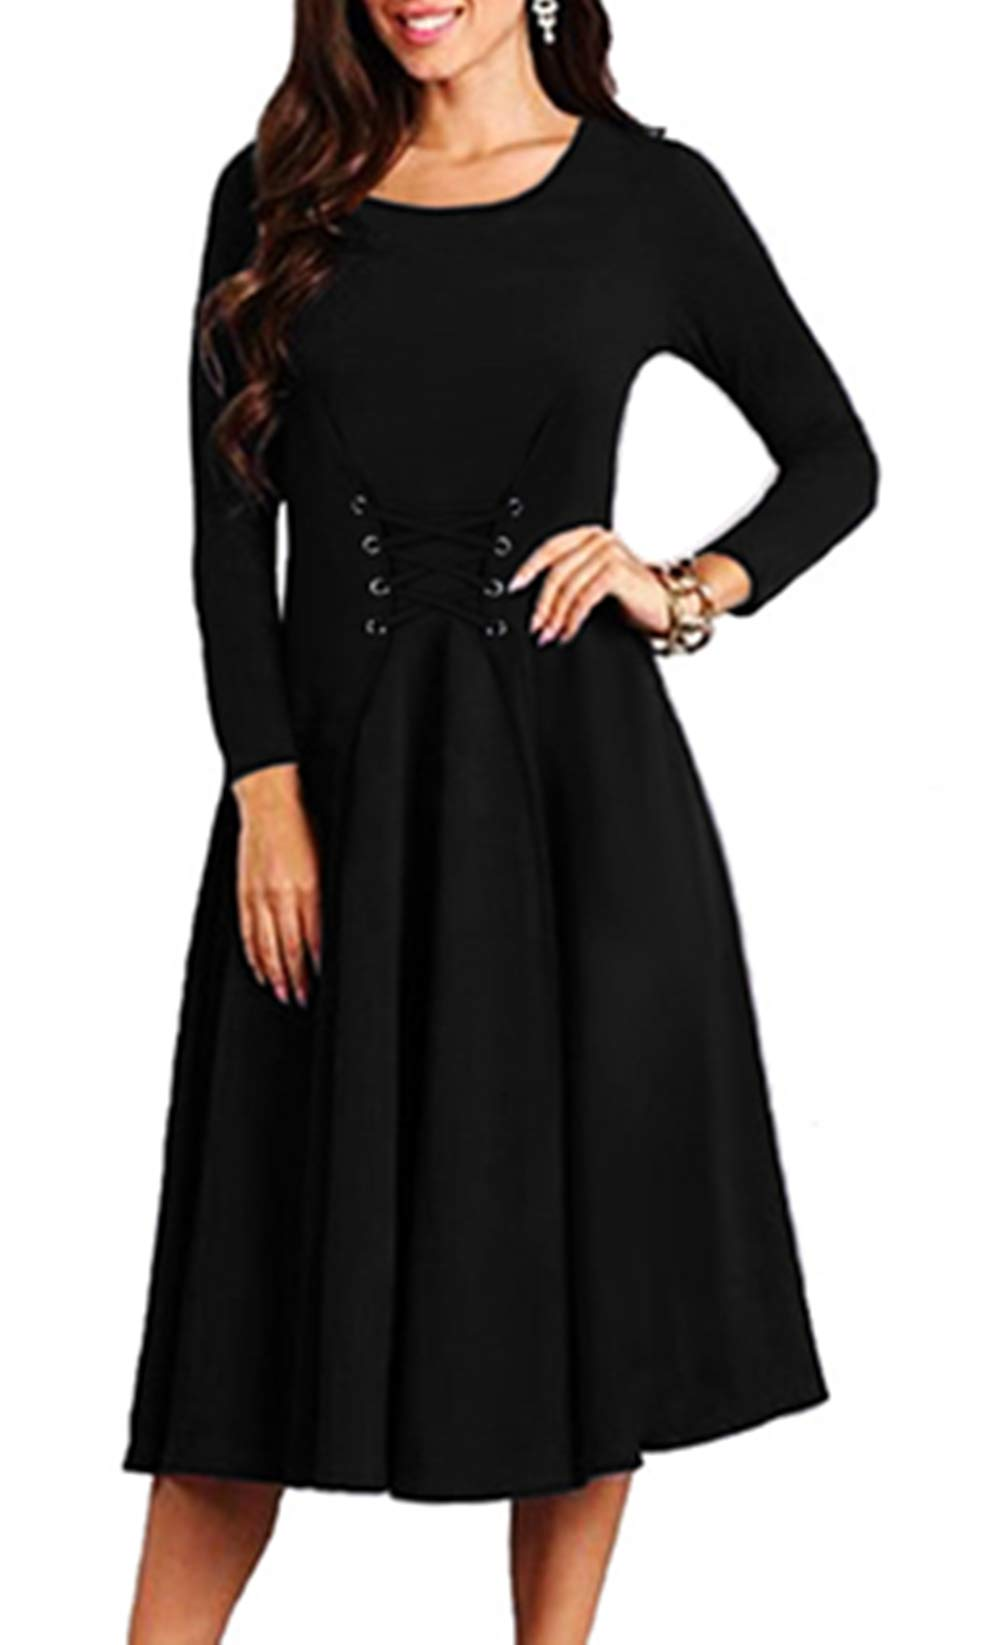 YANDW Women Casual Lace up Corset Dress Cotton Knit Long Sleeve Round Neck Solid Outfit